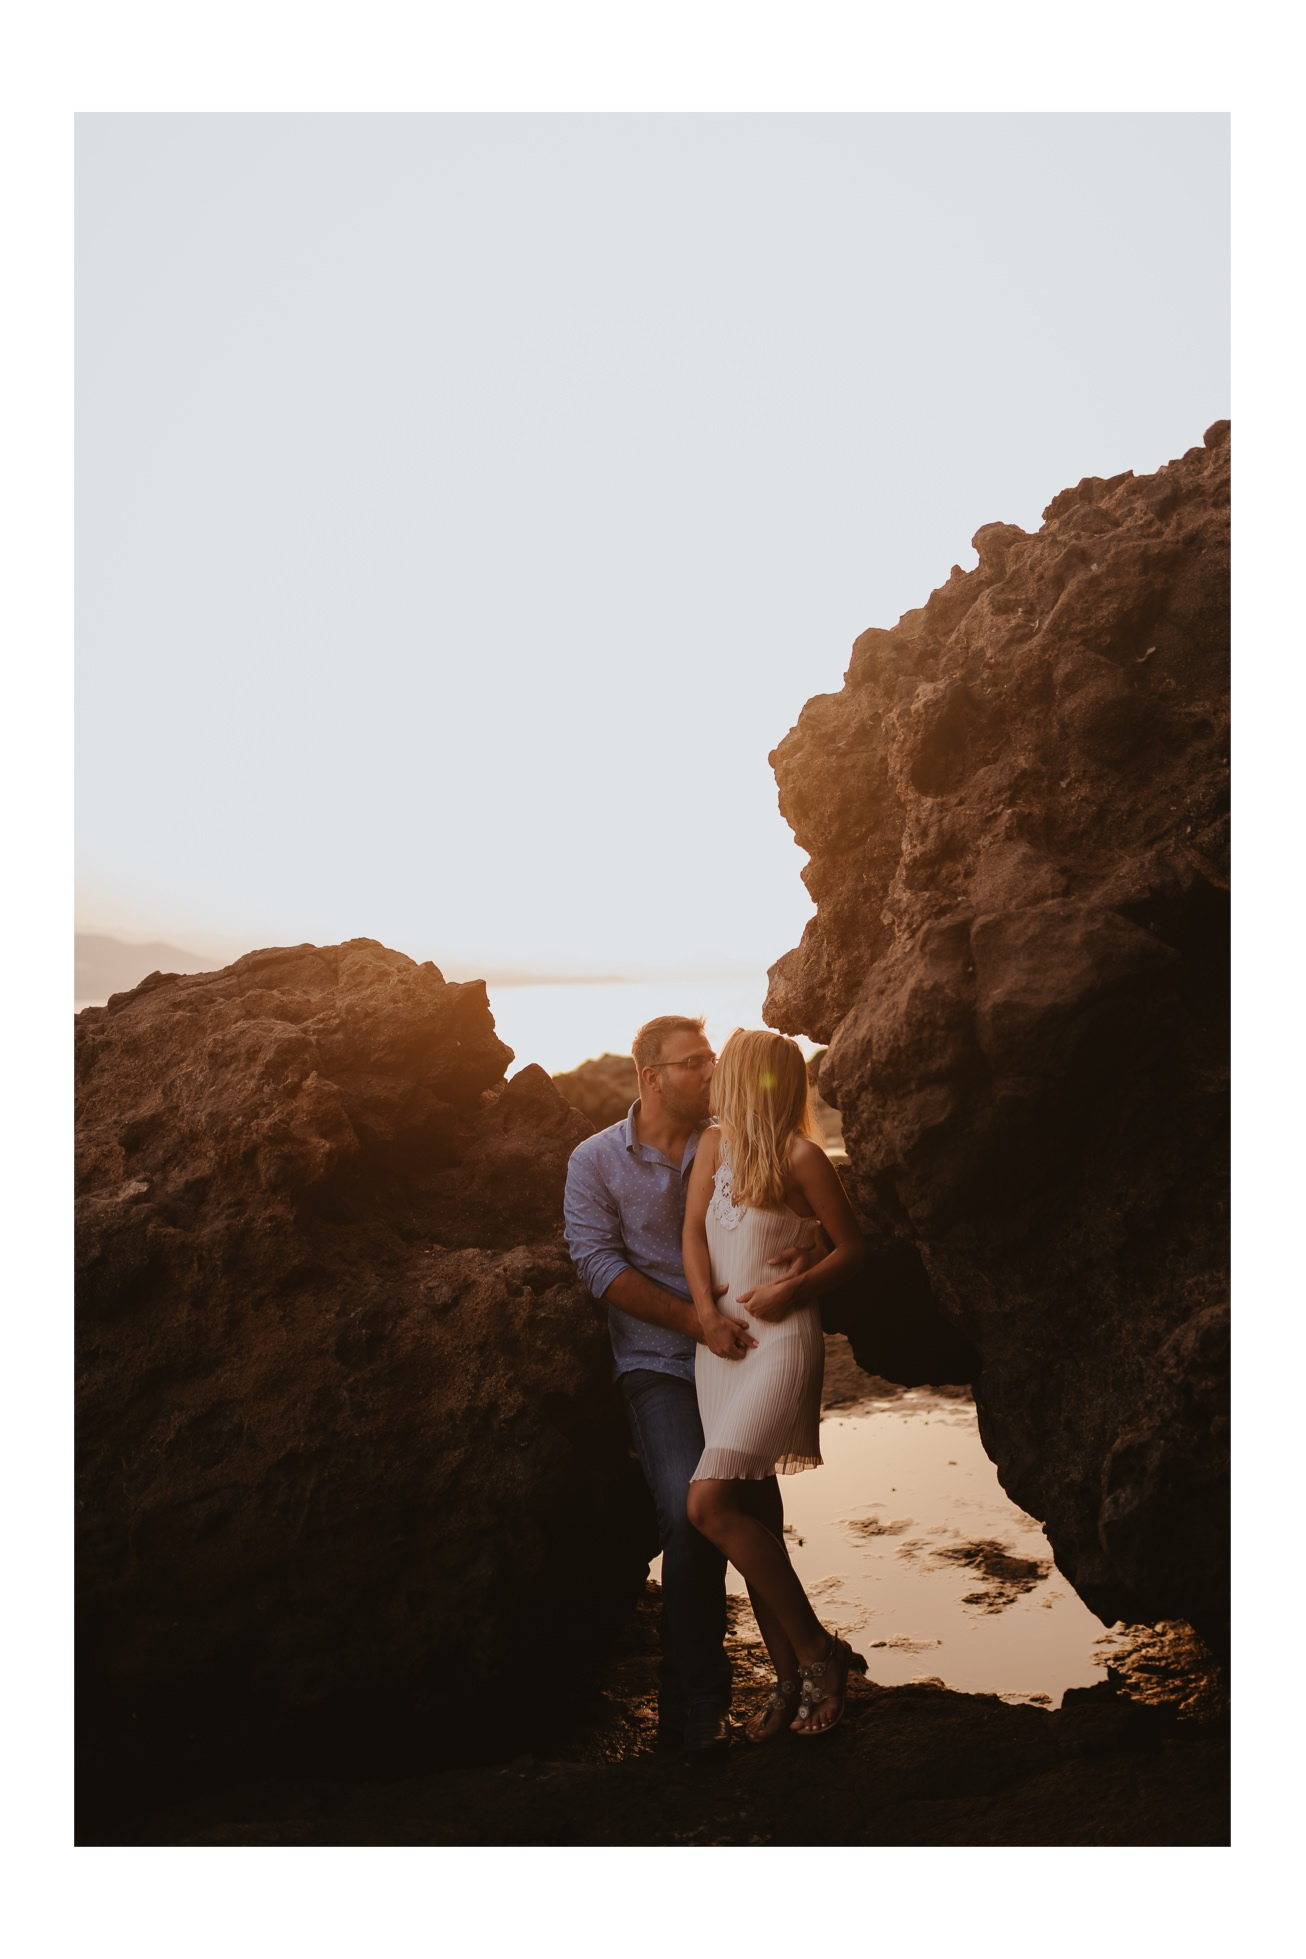 Gran Canaria Canary Islands Wedding Photographer 33